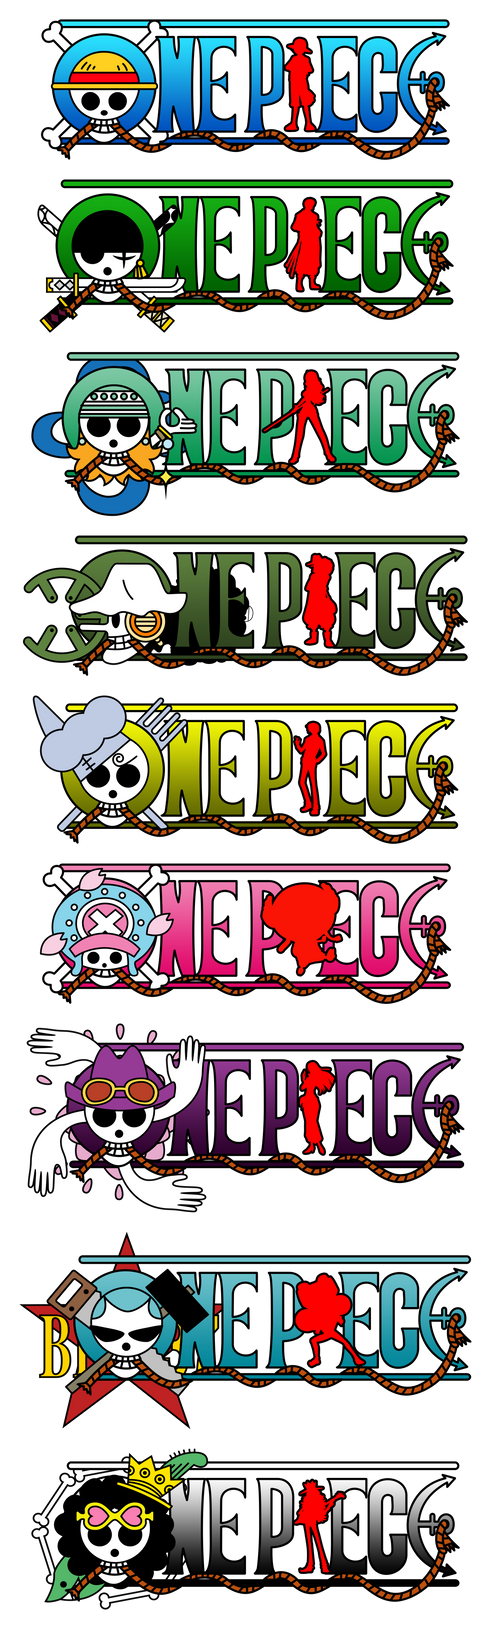 One piece logo straw hats crew 2y post timeskip by mcmgcls on deviantart - One piece logo zoro ...